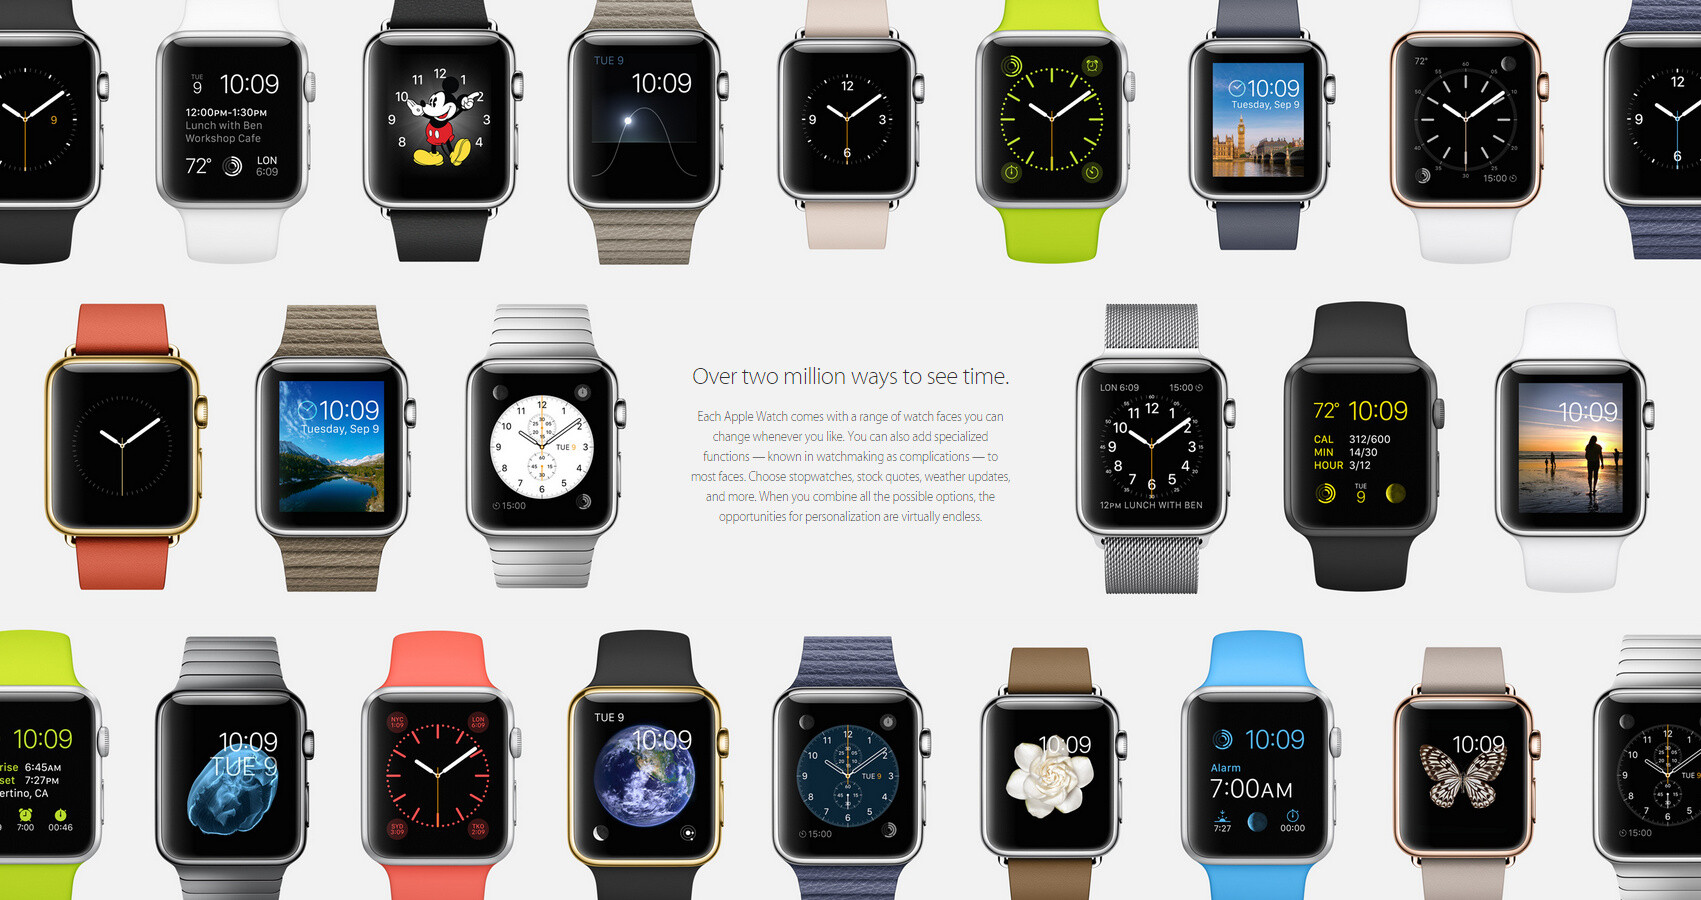 All of the watch faces...